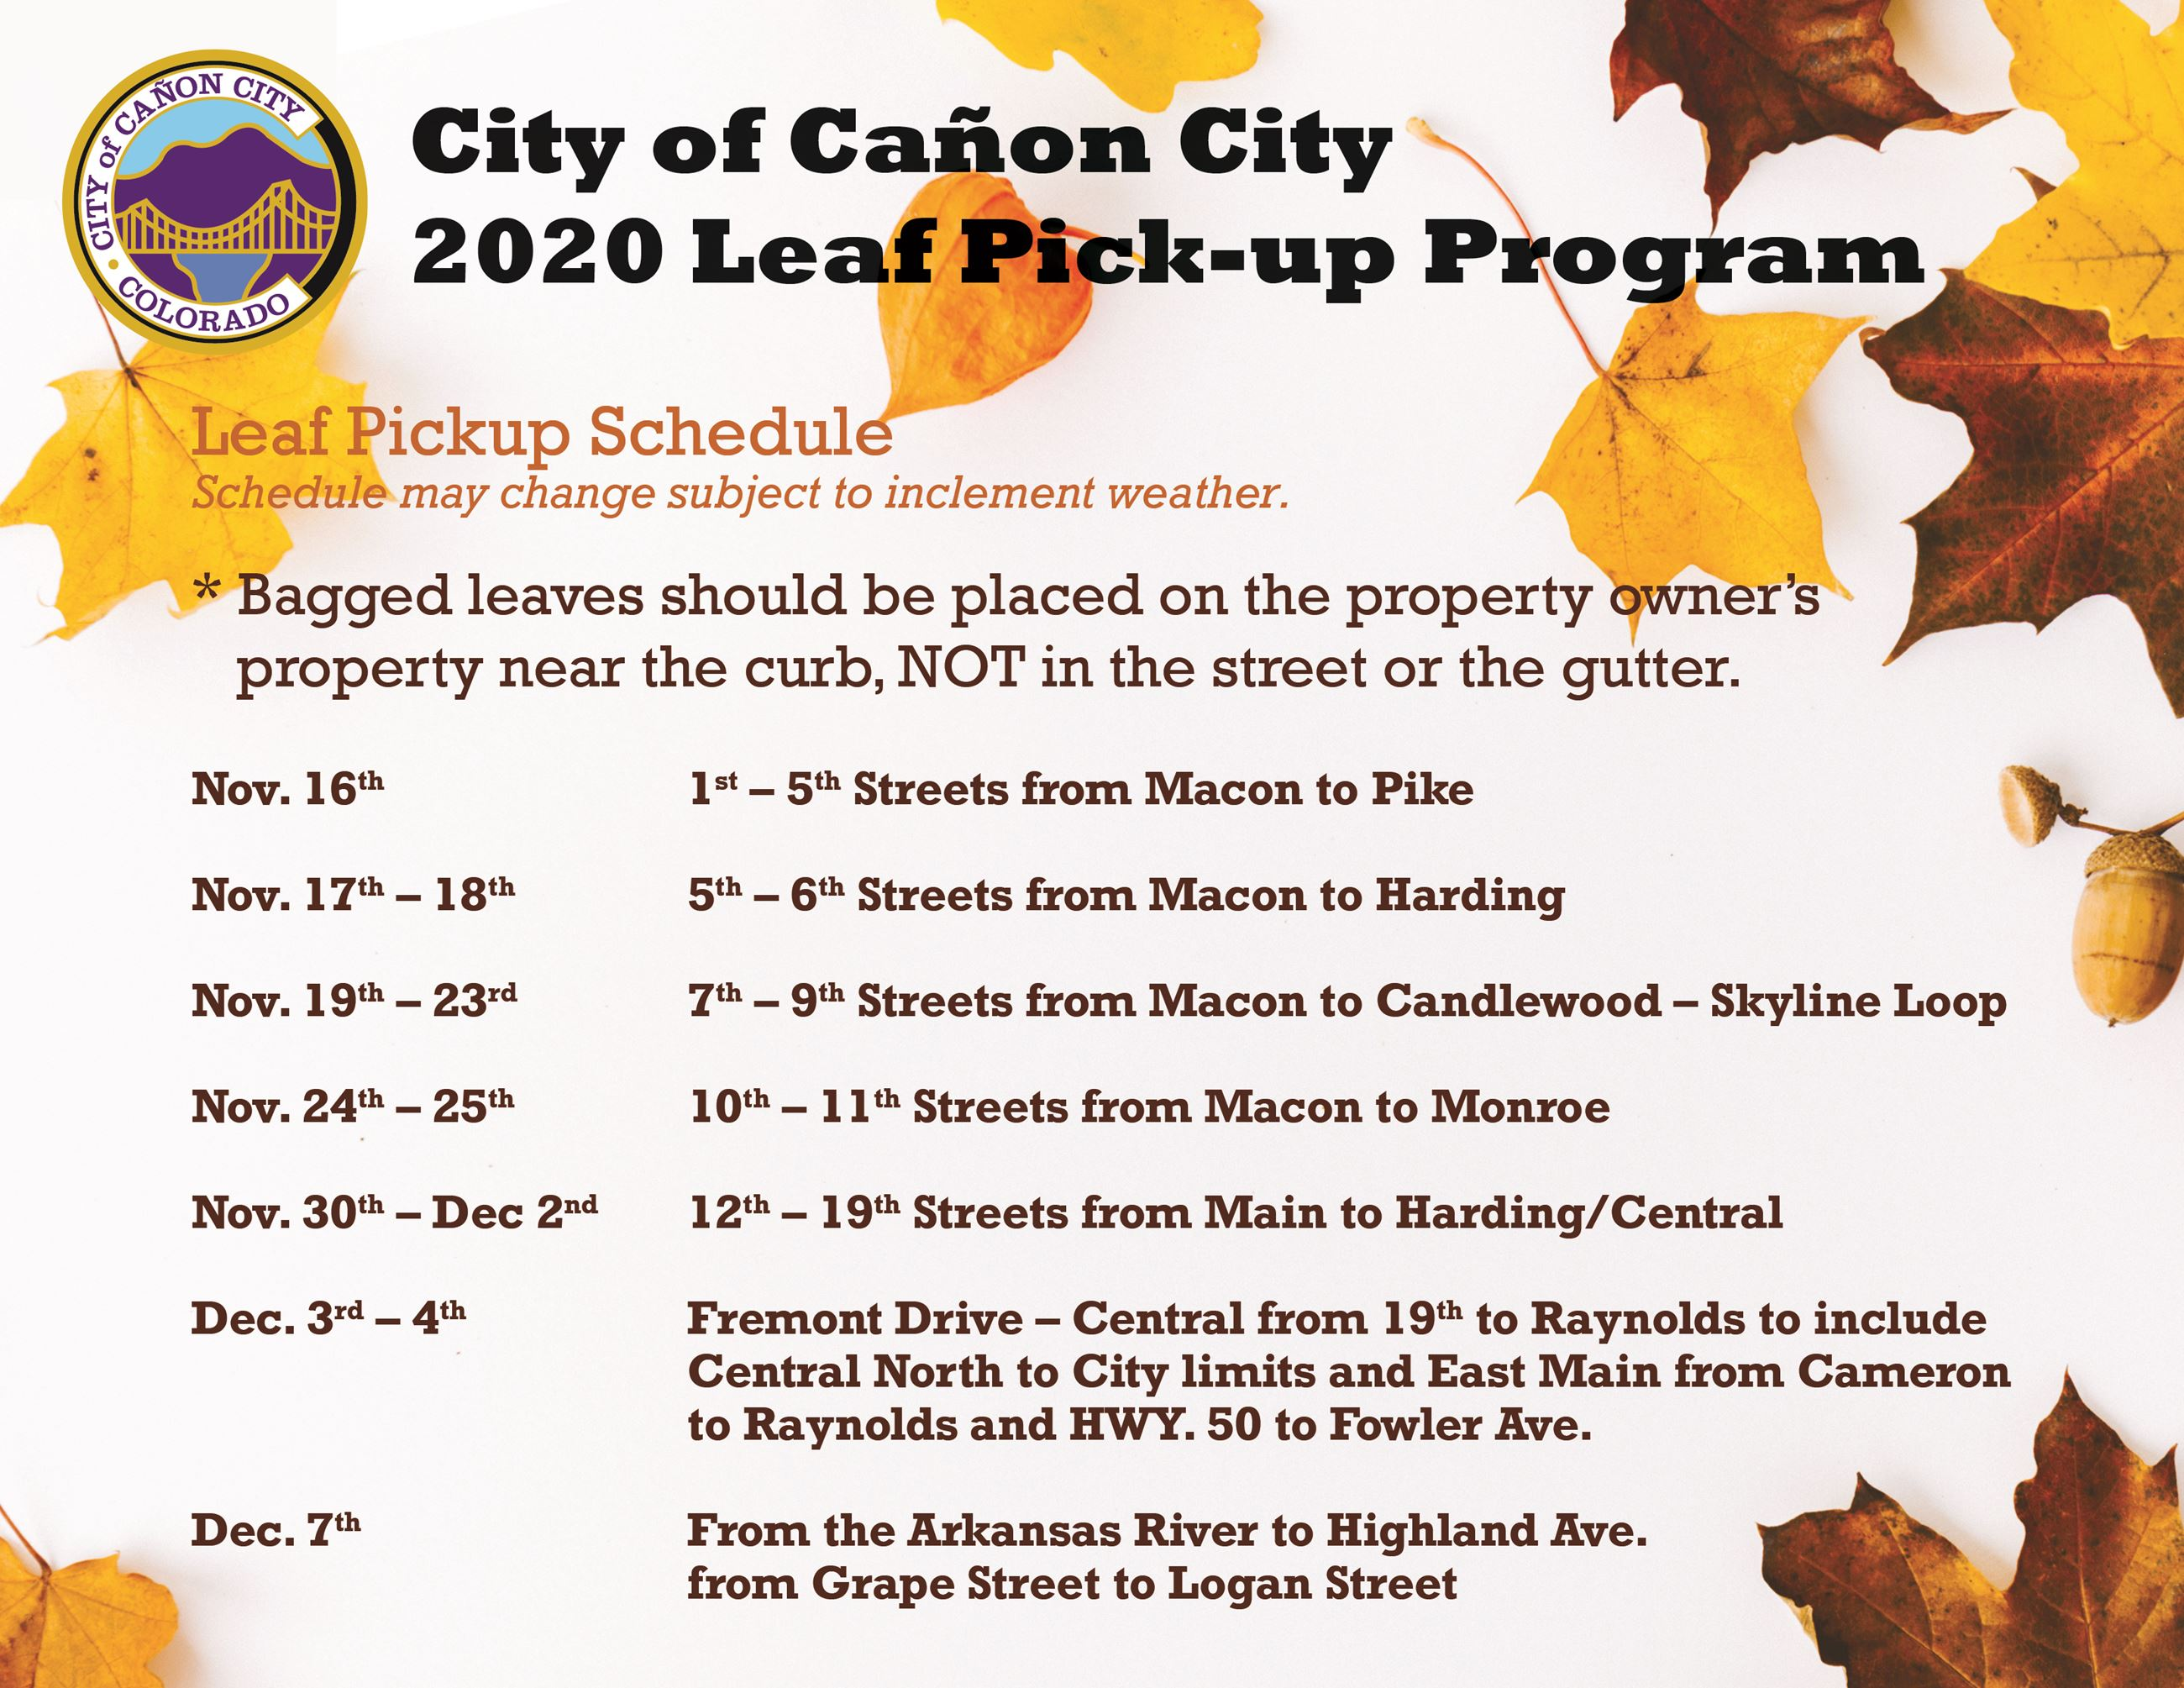 2020 Leaf Pickup Schedule